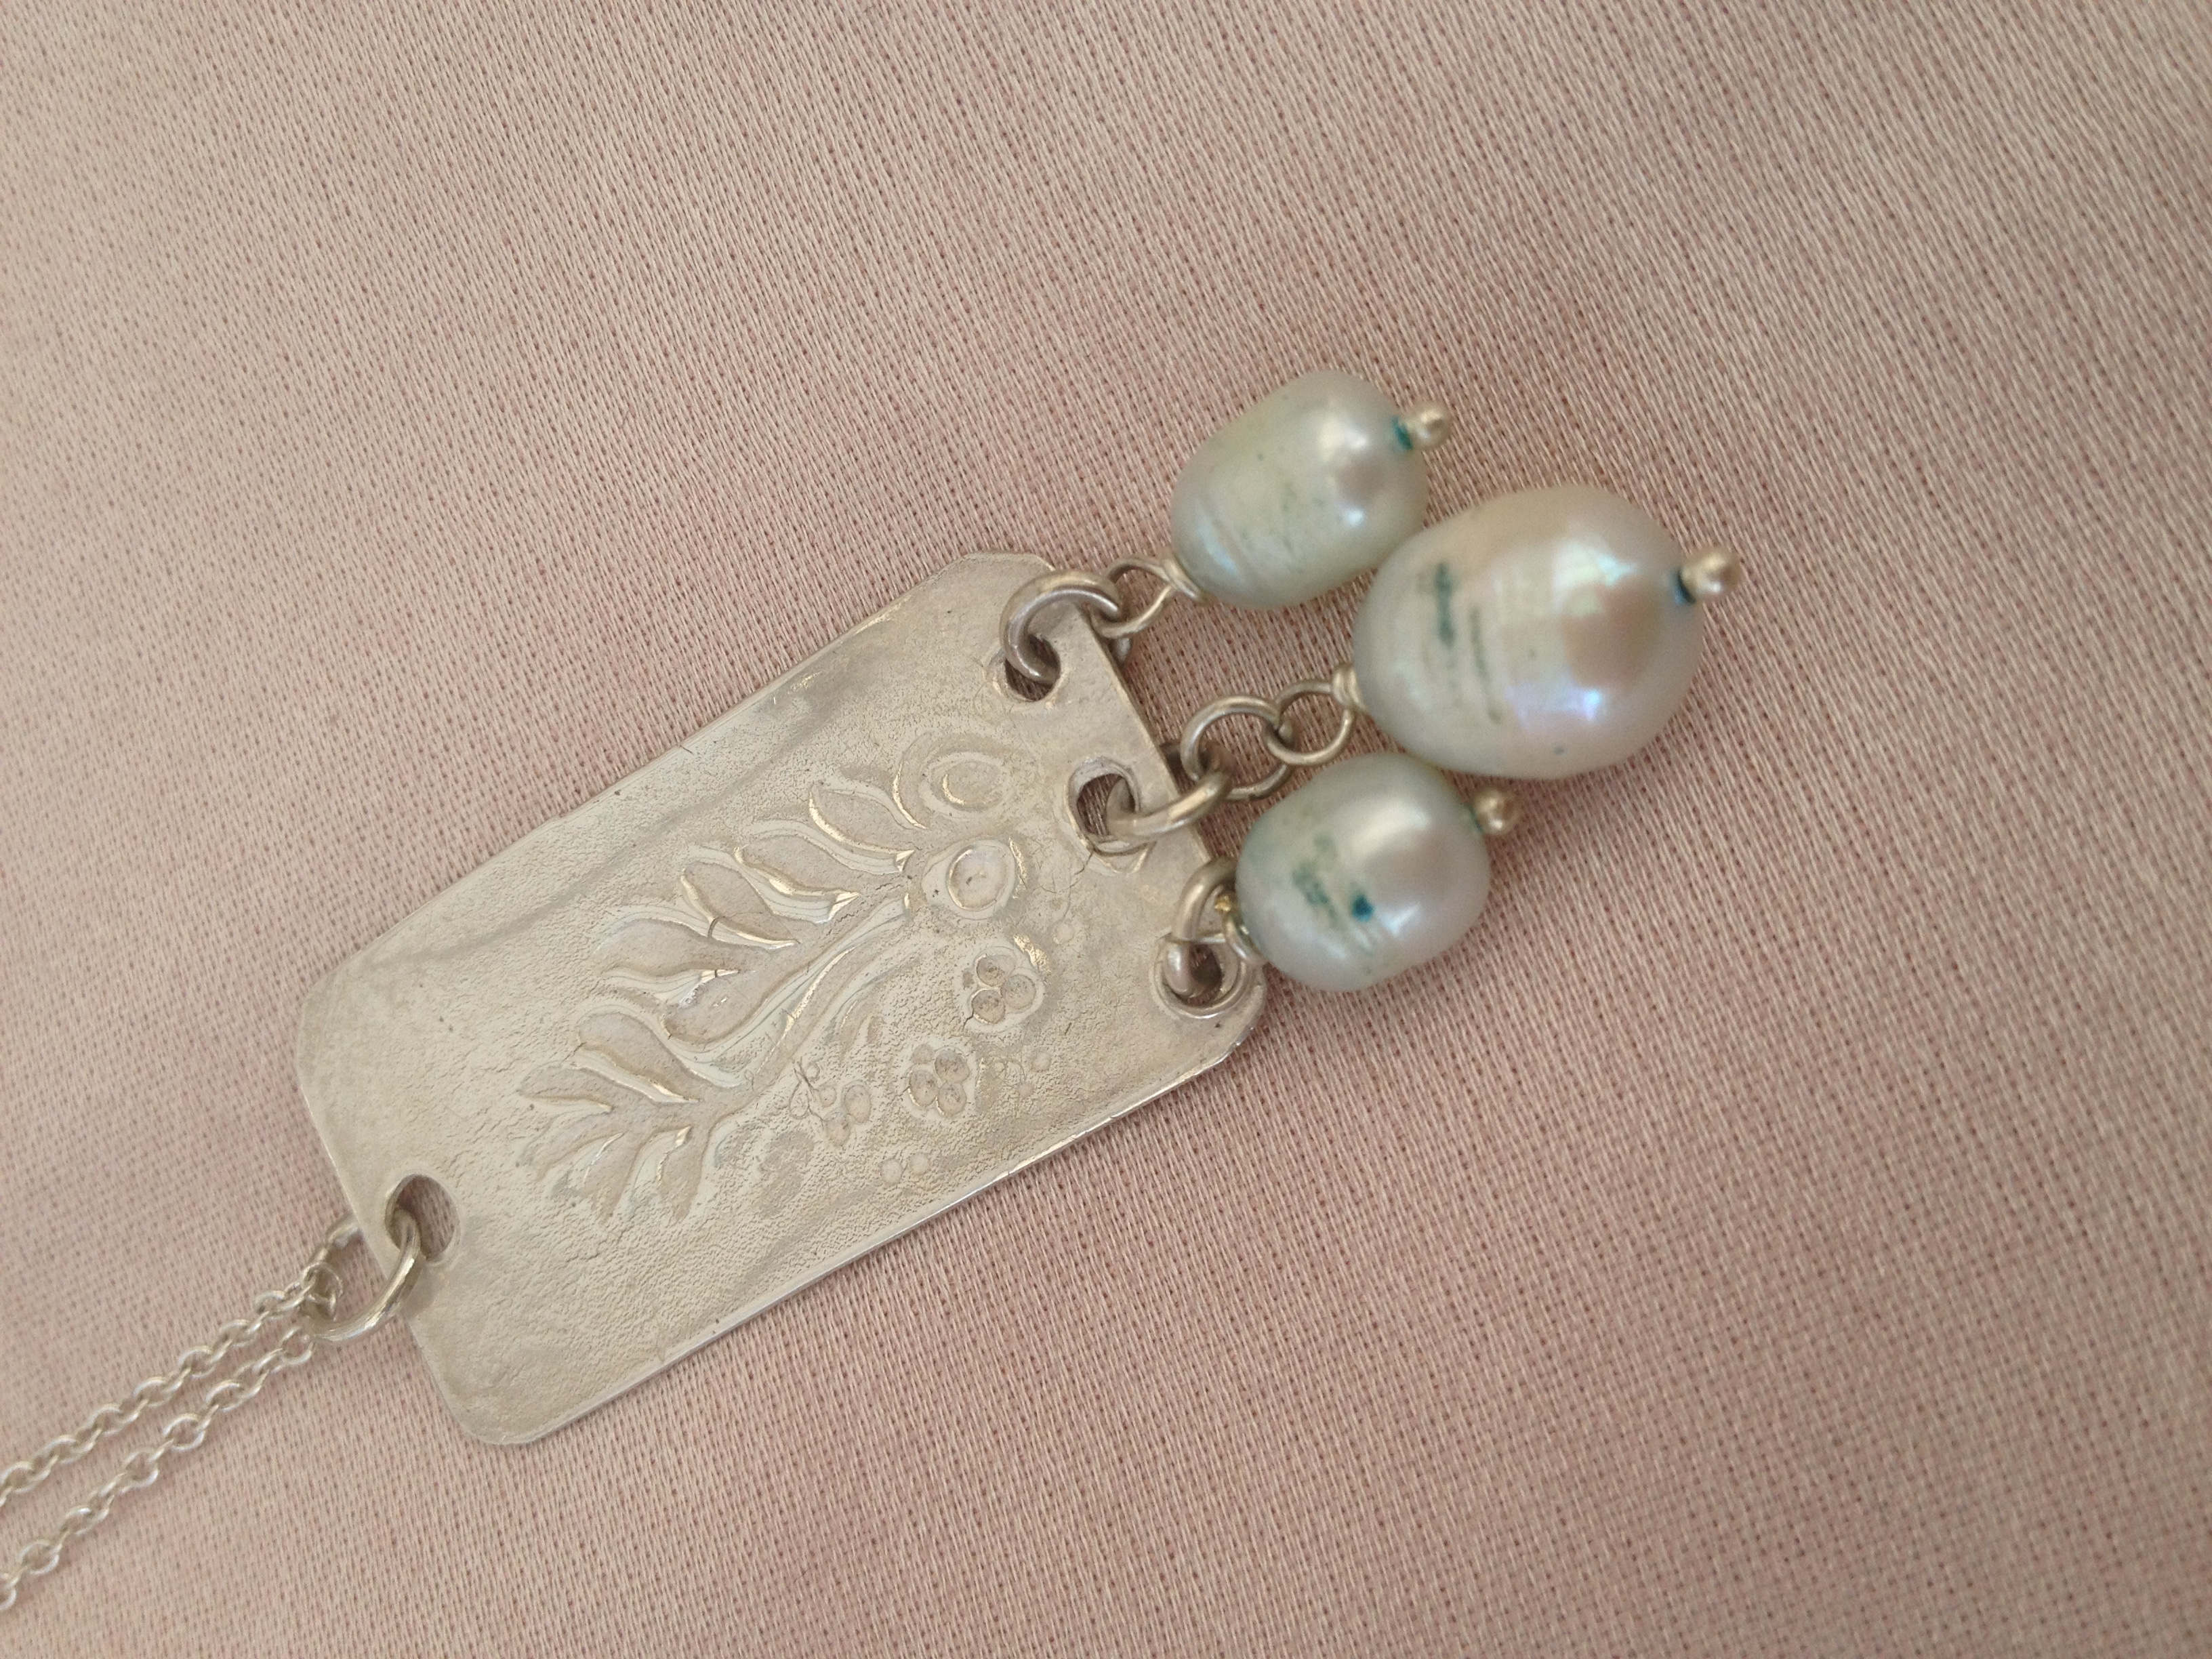 Silver Clay Jewellery with Freshwater Pearls - Day School : Louise Simmonds